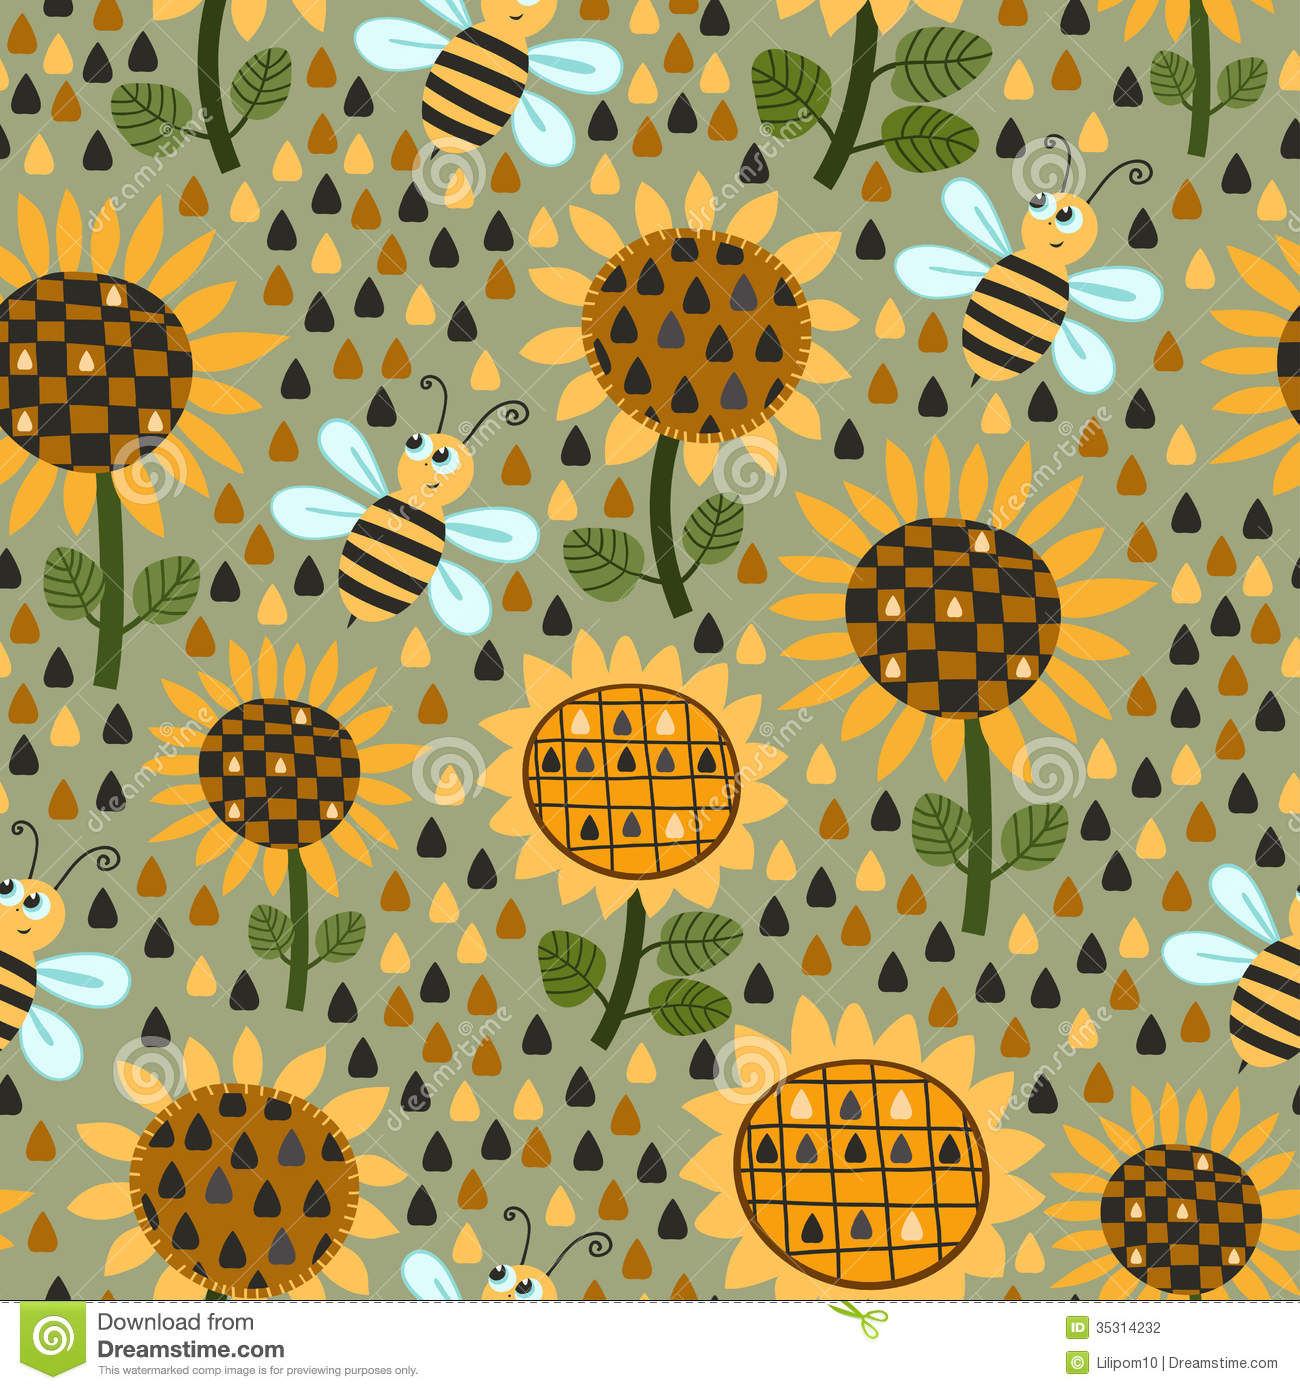 Fall Sunflowers Wallpaper Seamless Pattern With Sunflowers And Bees Stock Vector